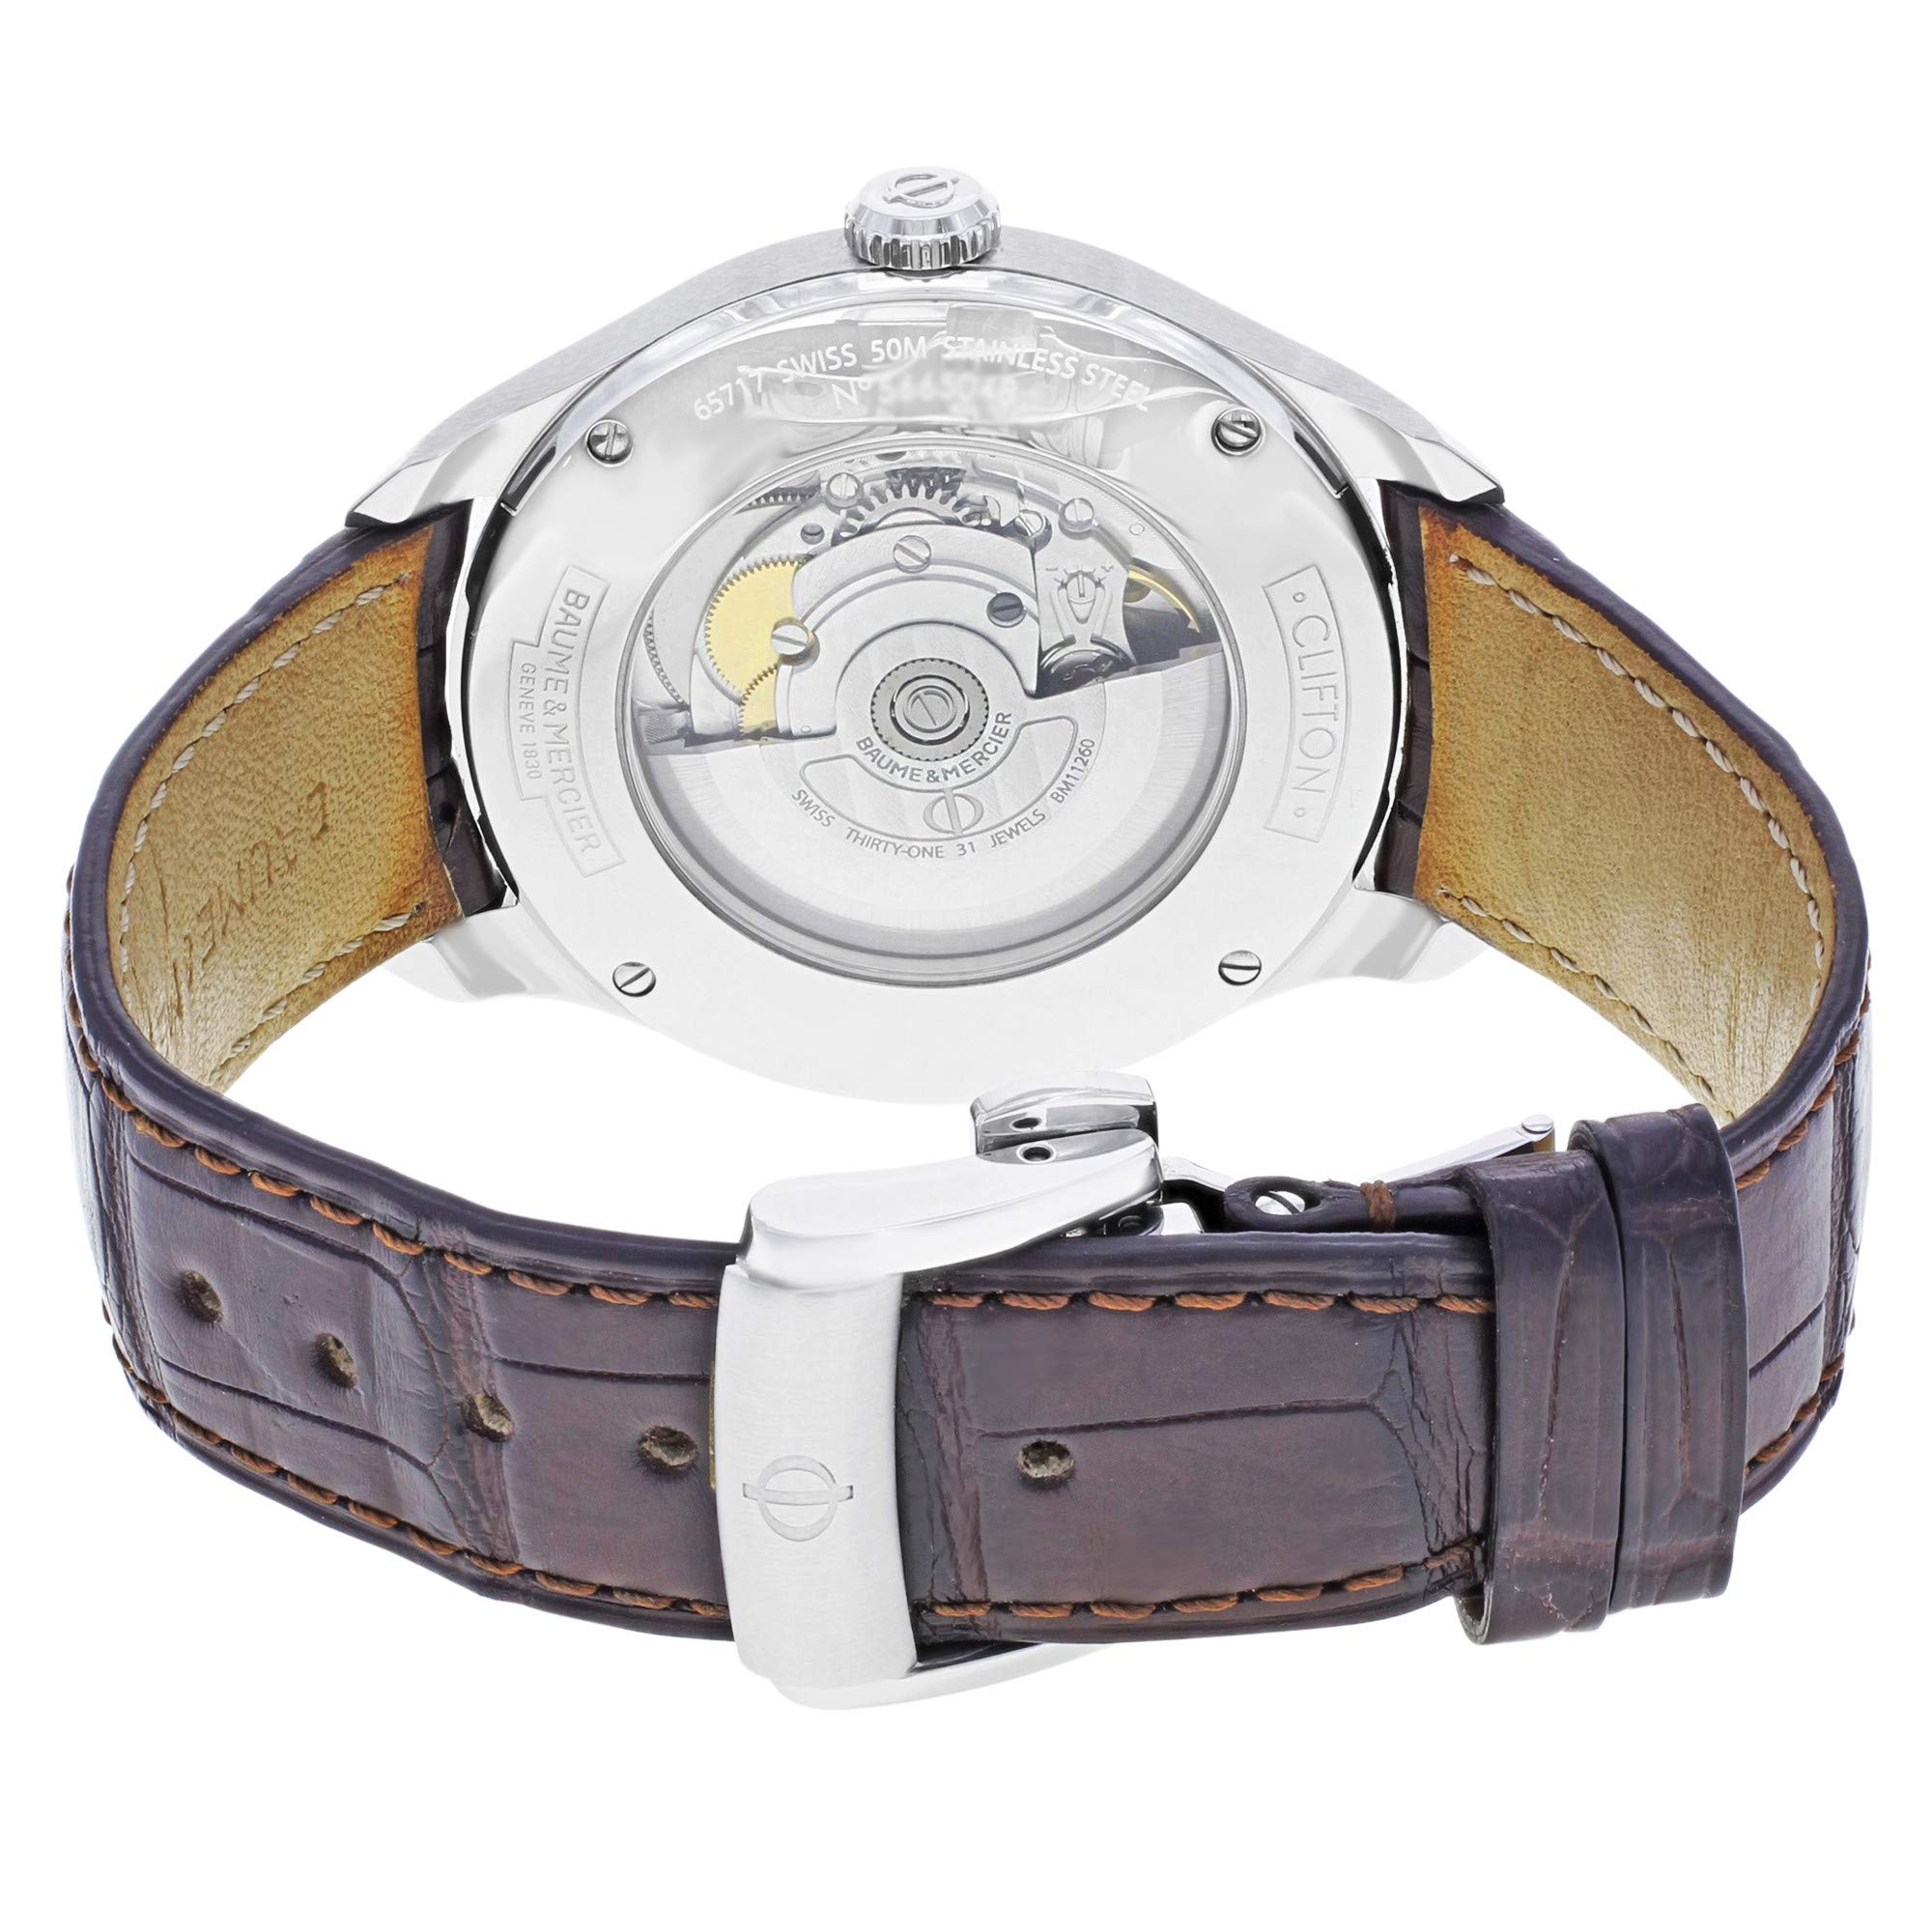 Baume & Mercier Clifton Automatic-self-Wind Male Watch MOA10054 (Certified Pre-Owned) by Baume & Mercier (Image #2)